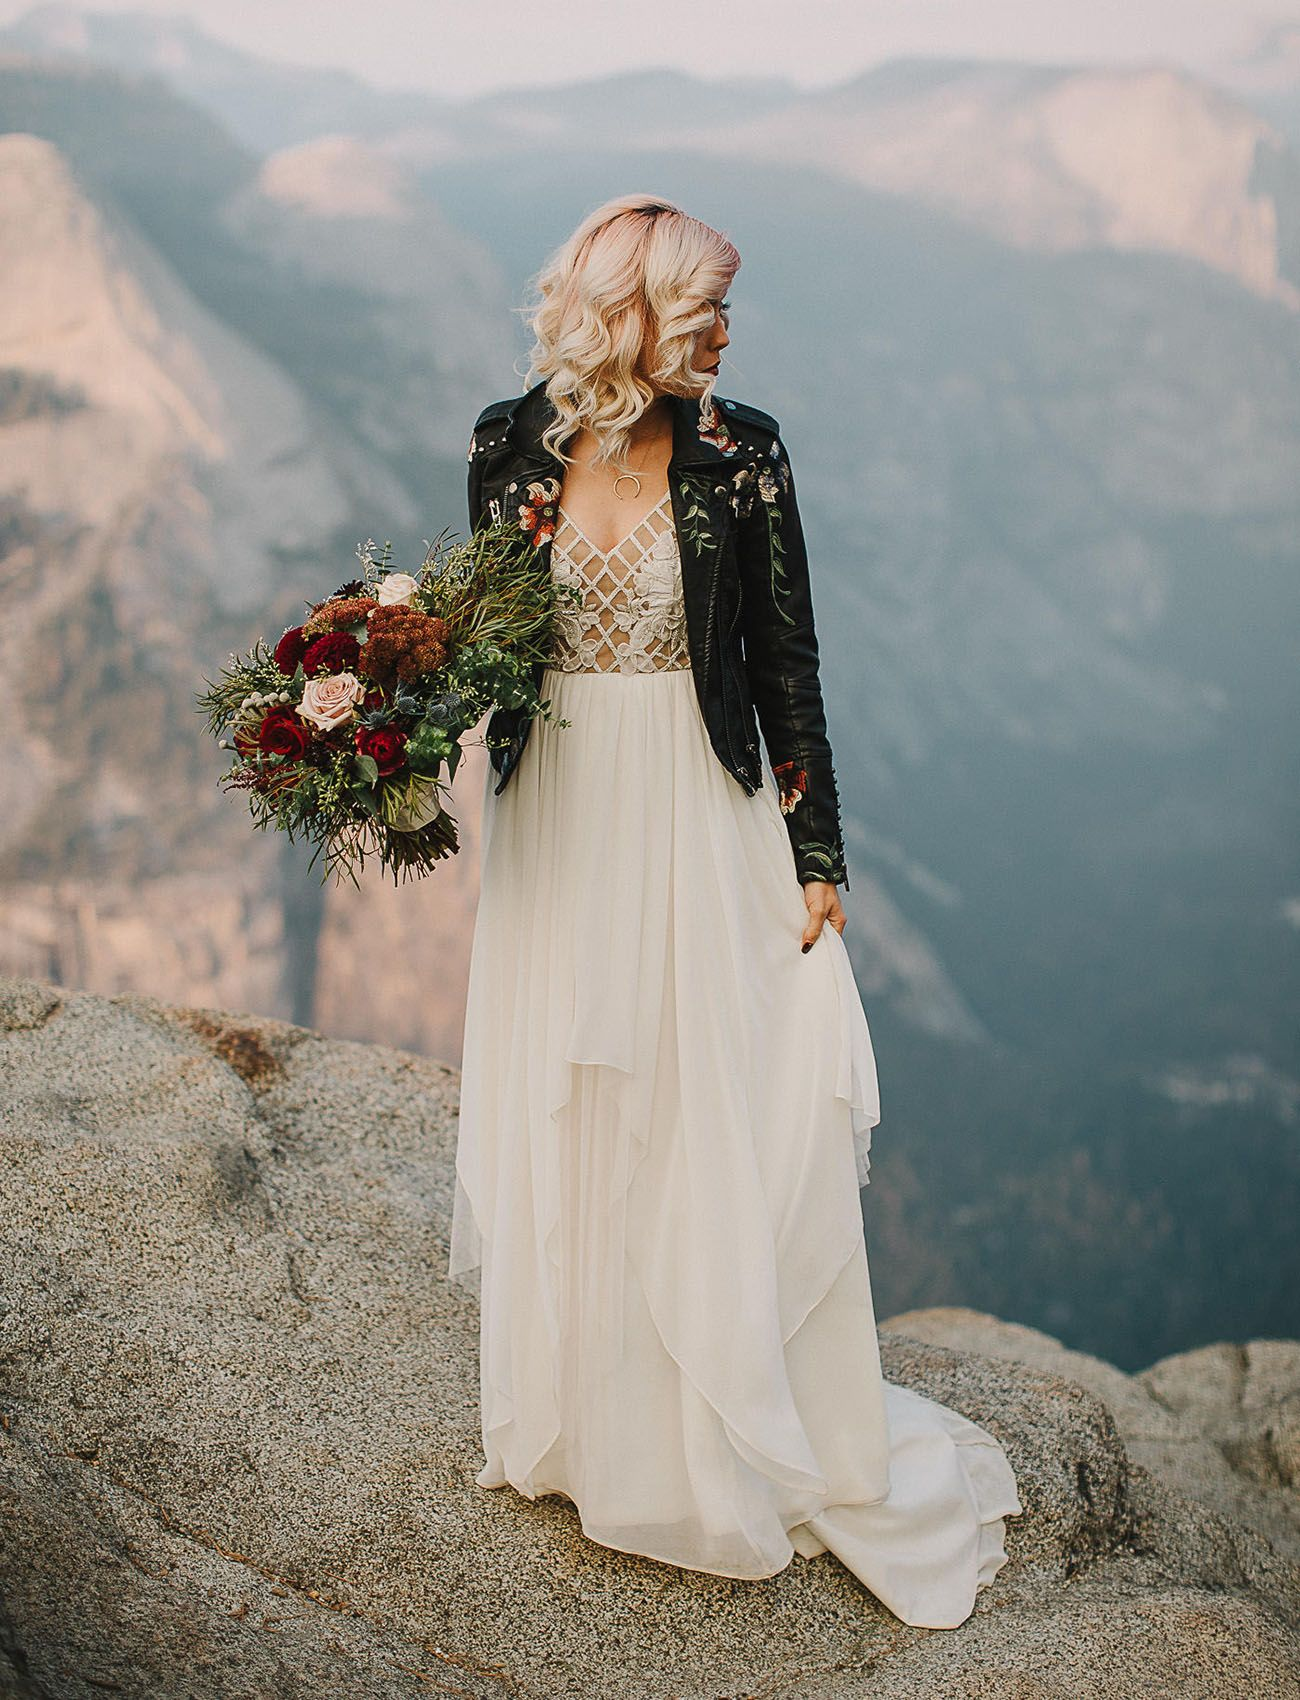 Dress with jacket for wedding  Elegant  Edgy Elopement in Yosemite National Park  Leather jackets